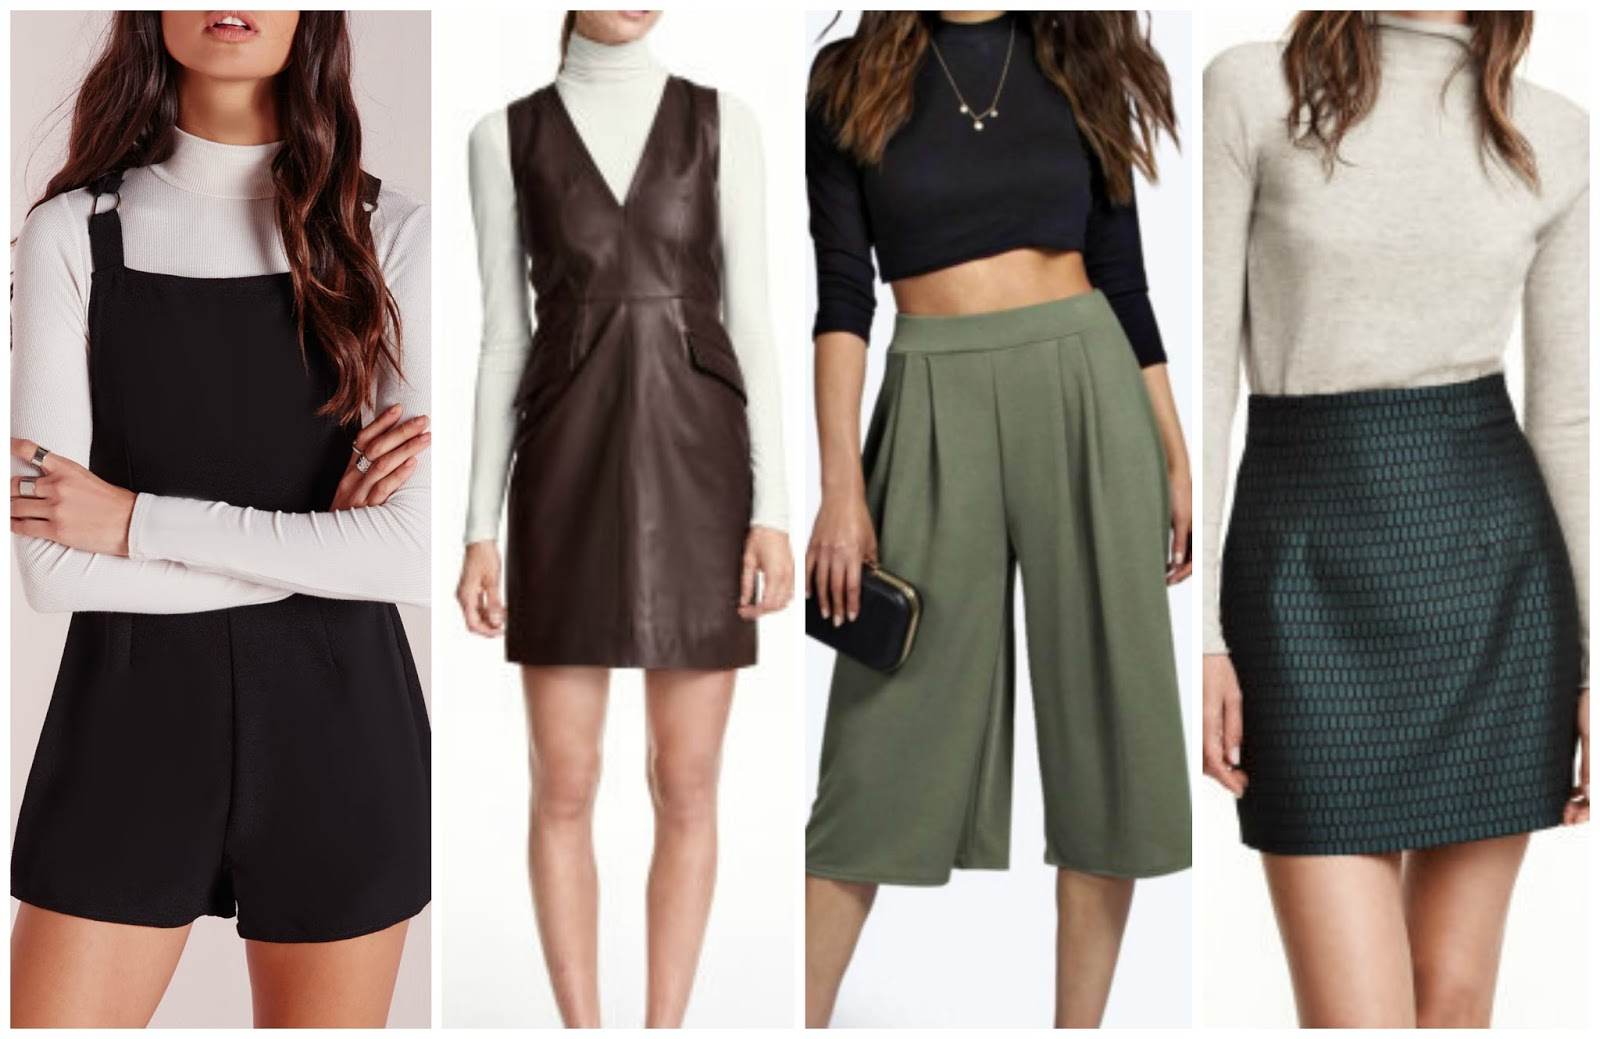 Missguided, Boohoo, H&M workwear fashion, leather dress, playsuit, a line skirt, jacquard skirt, wishlist, 100 ways to 30